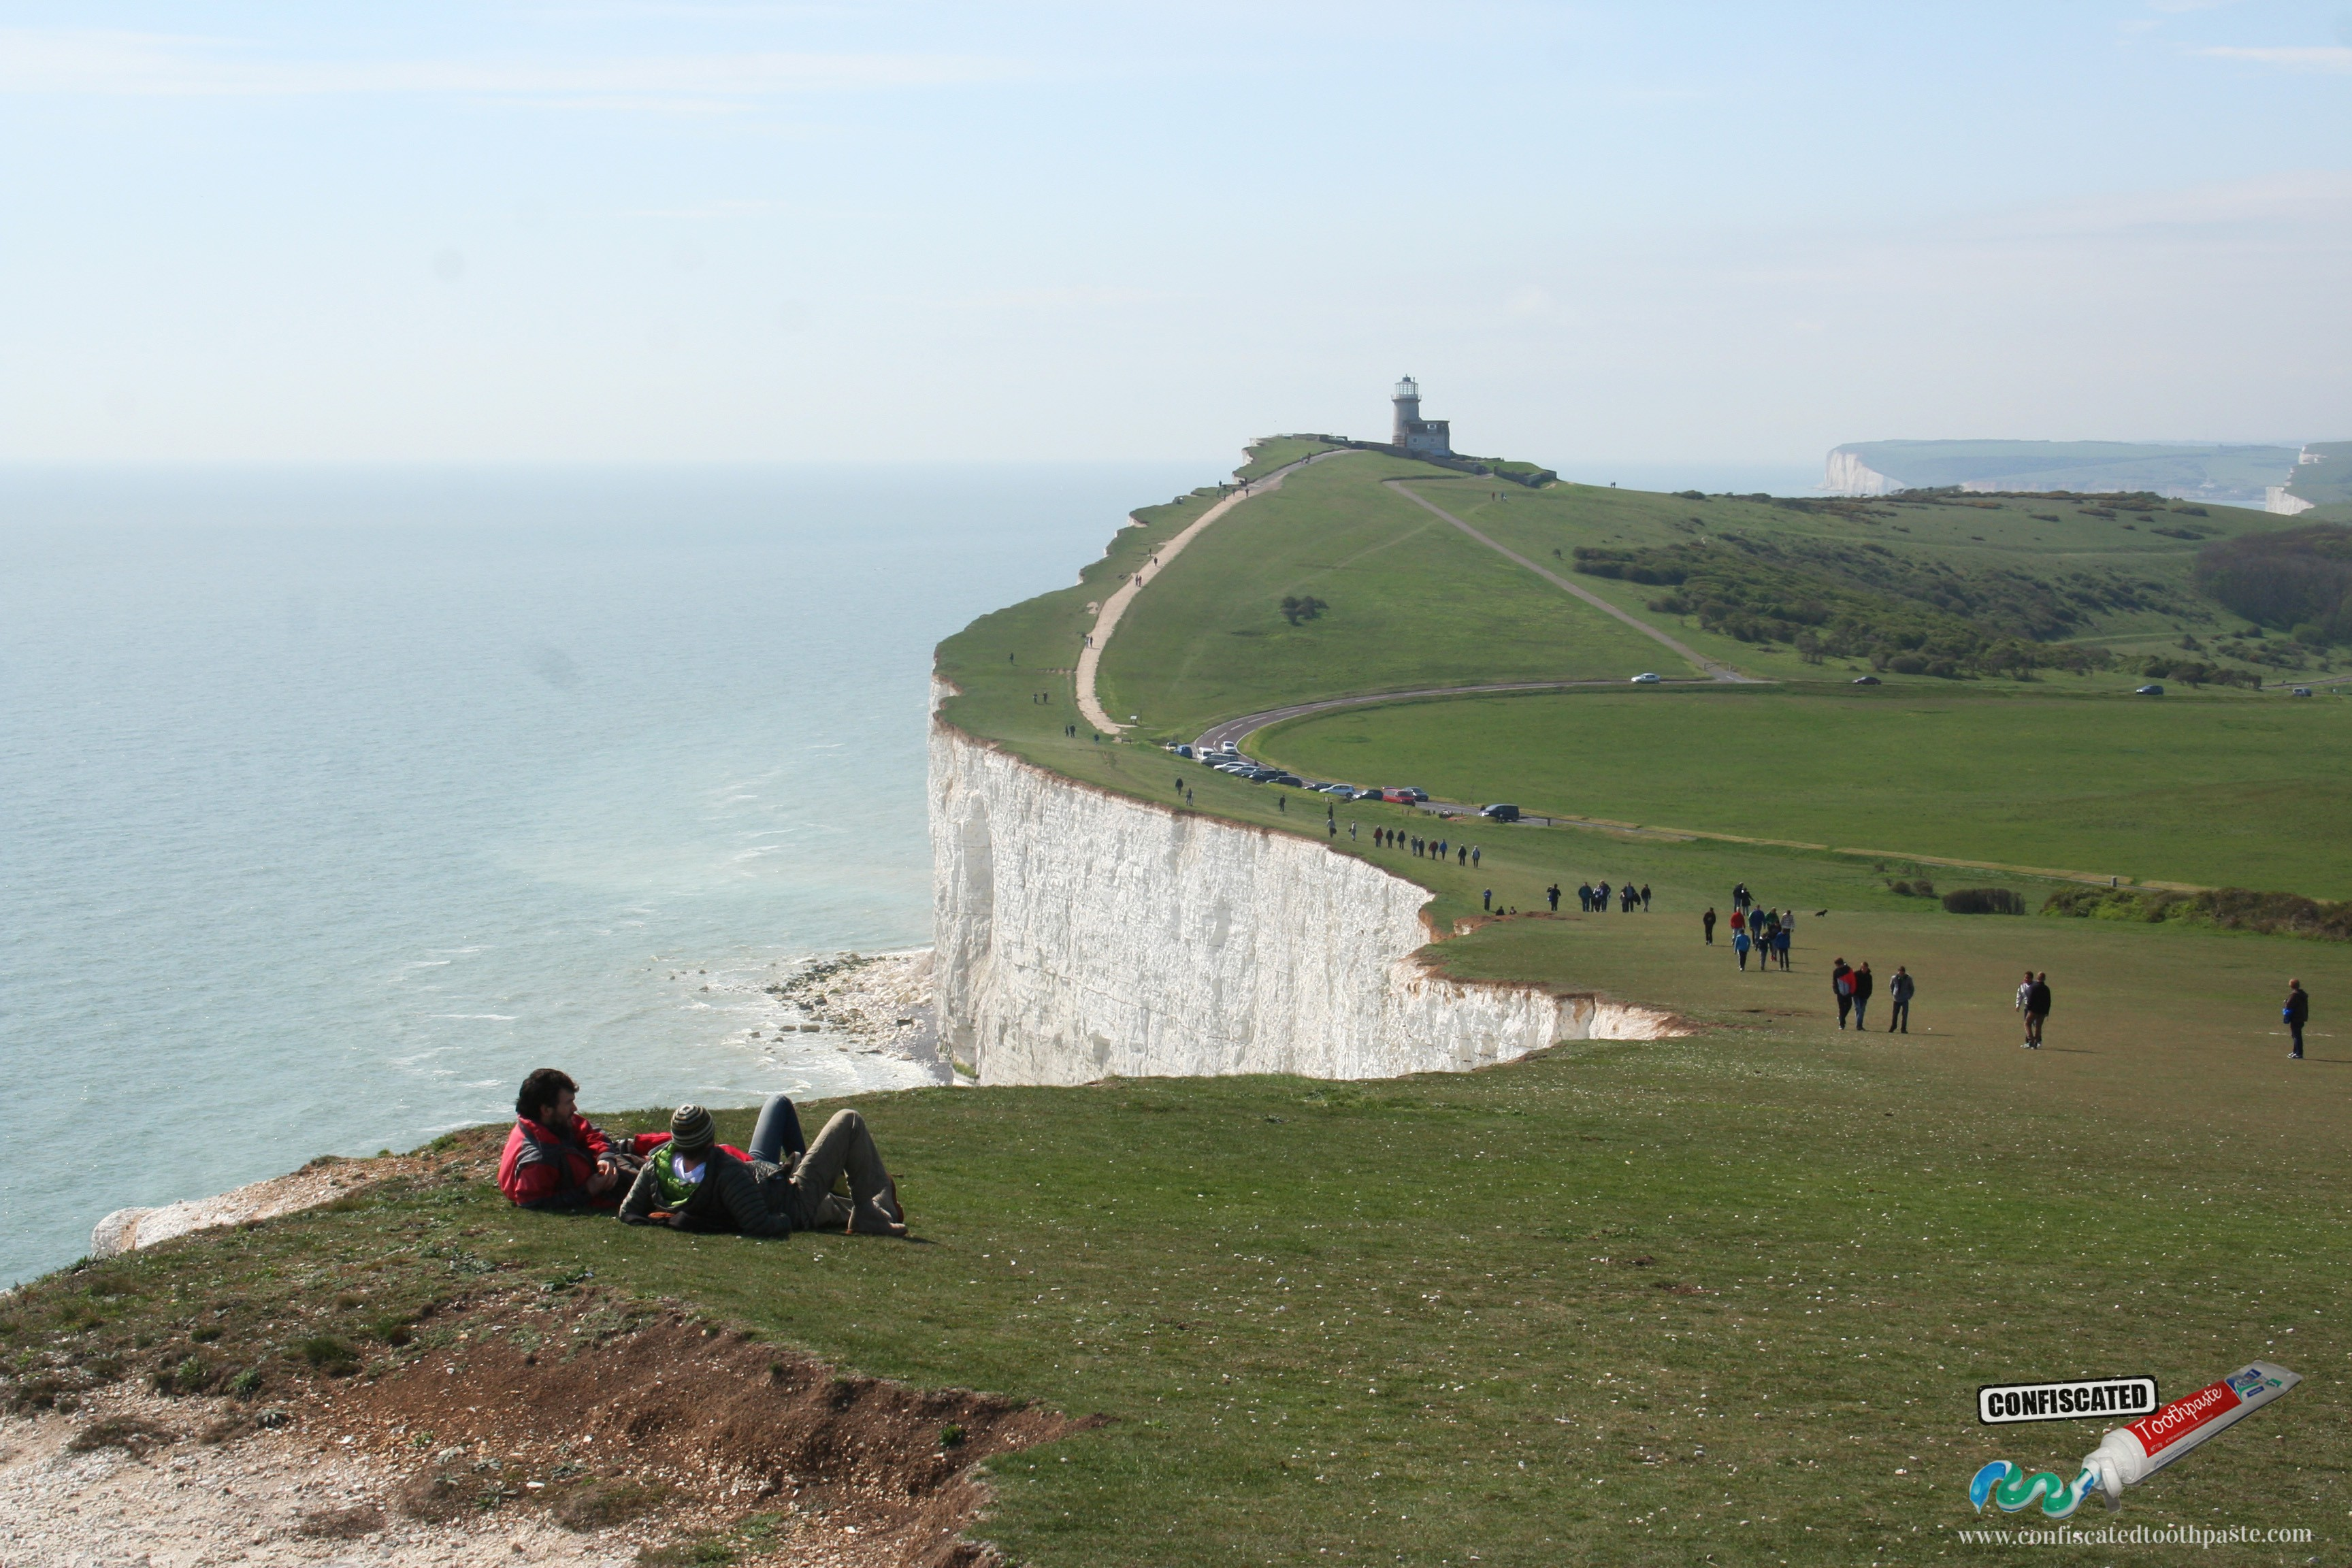 Chalk cliffs at Beachy Head, near Eastbourne in the south of England, United Kingdom